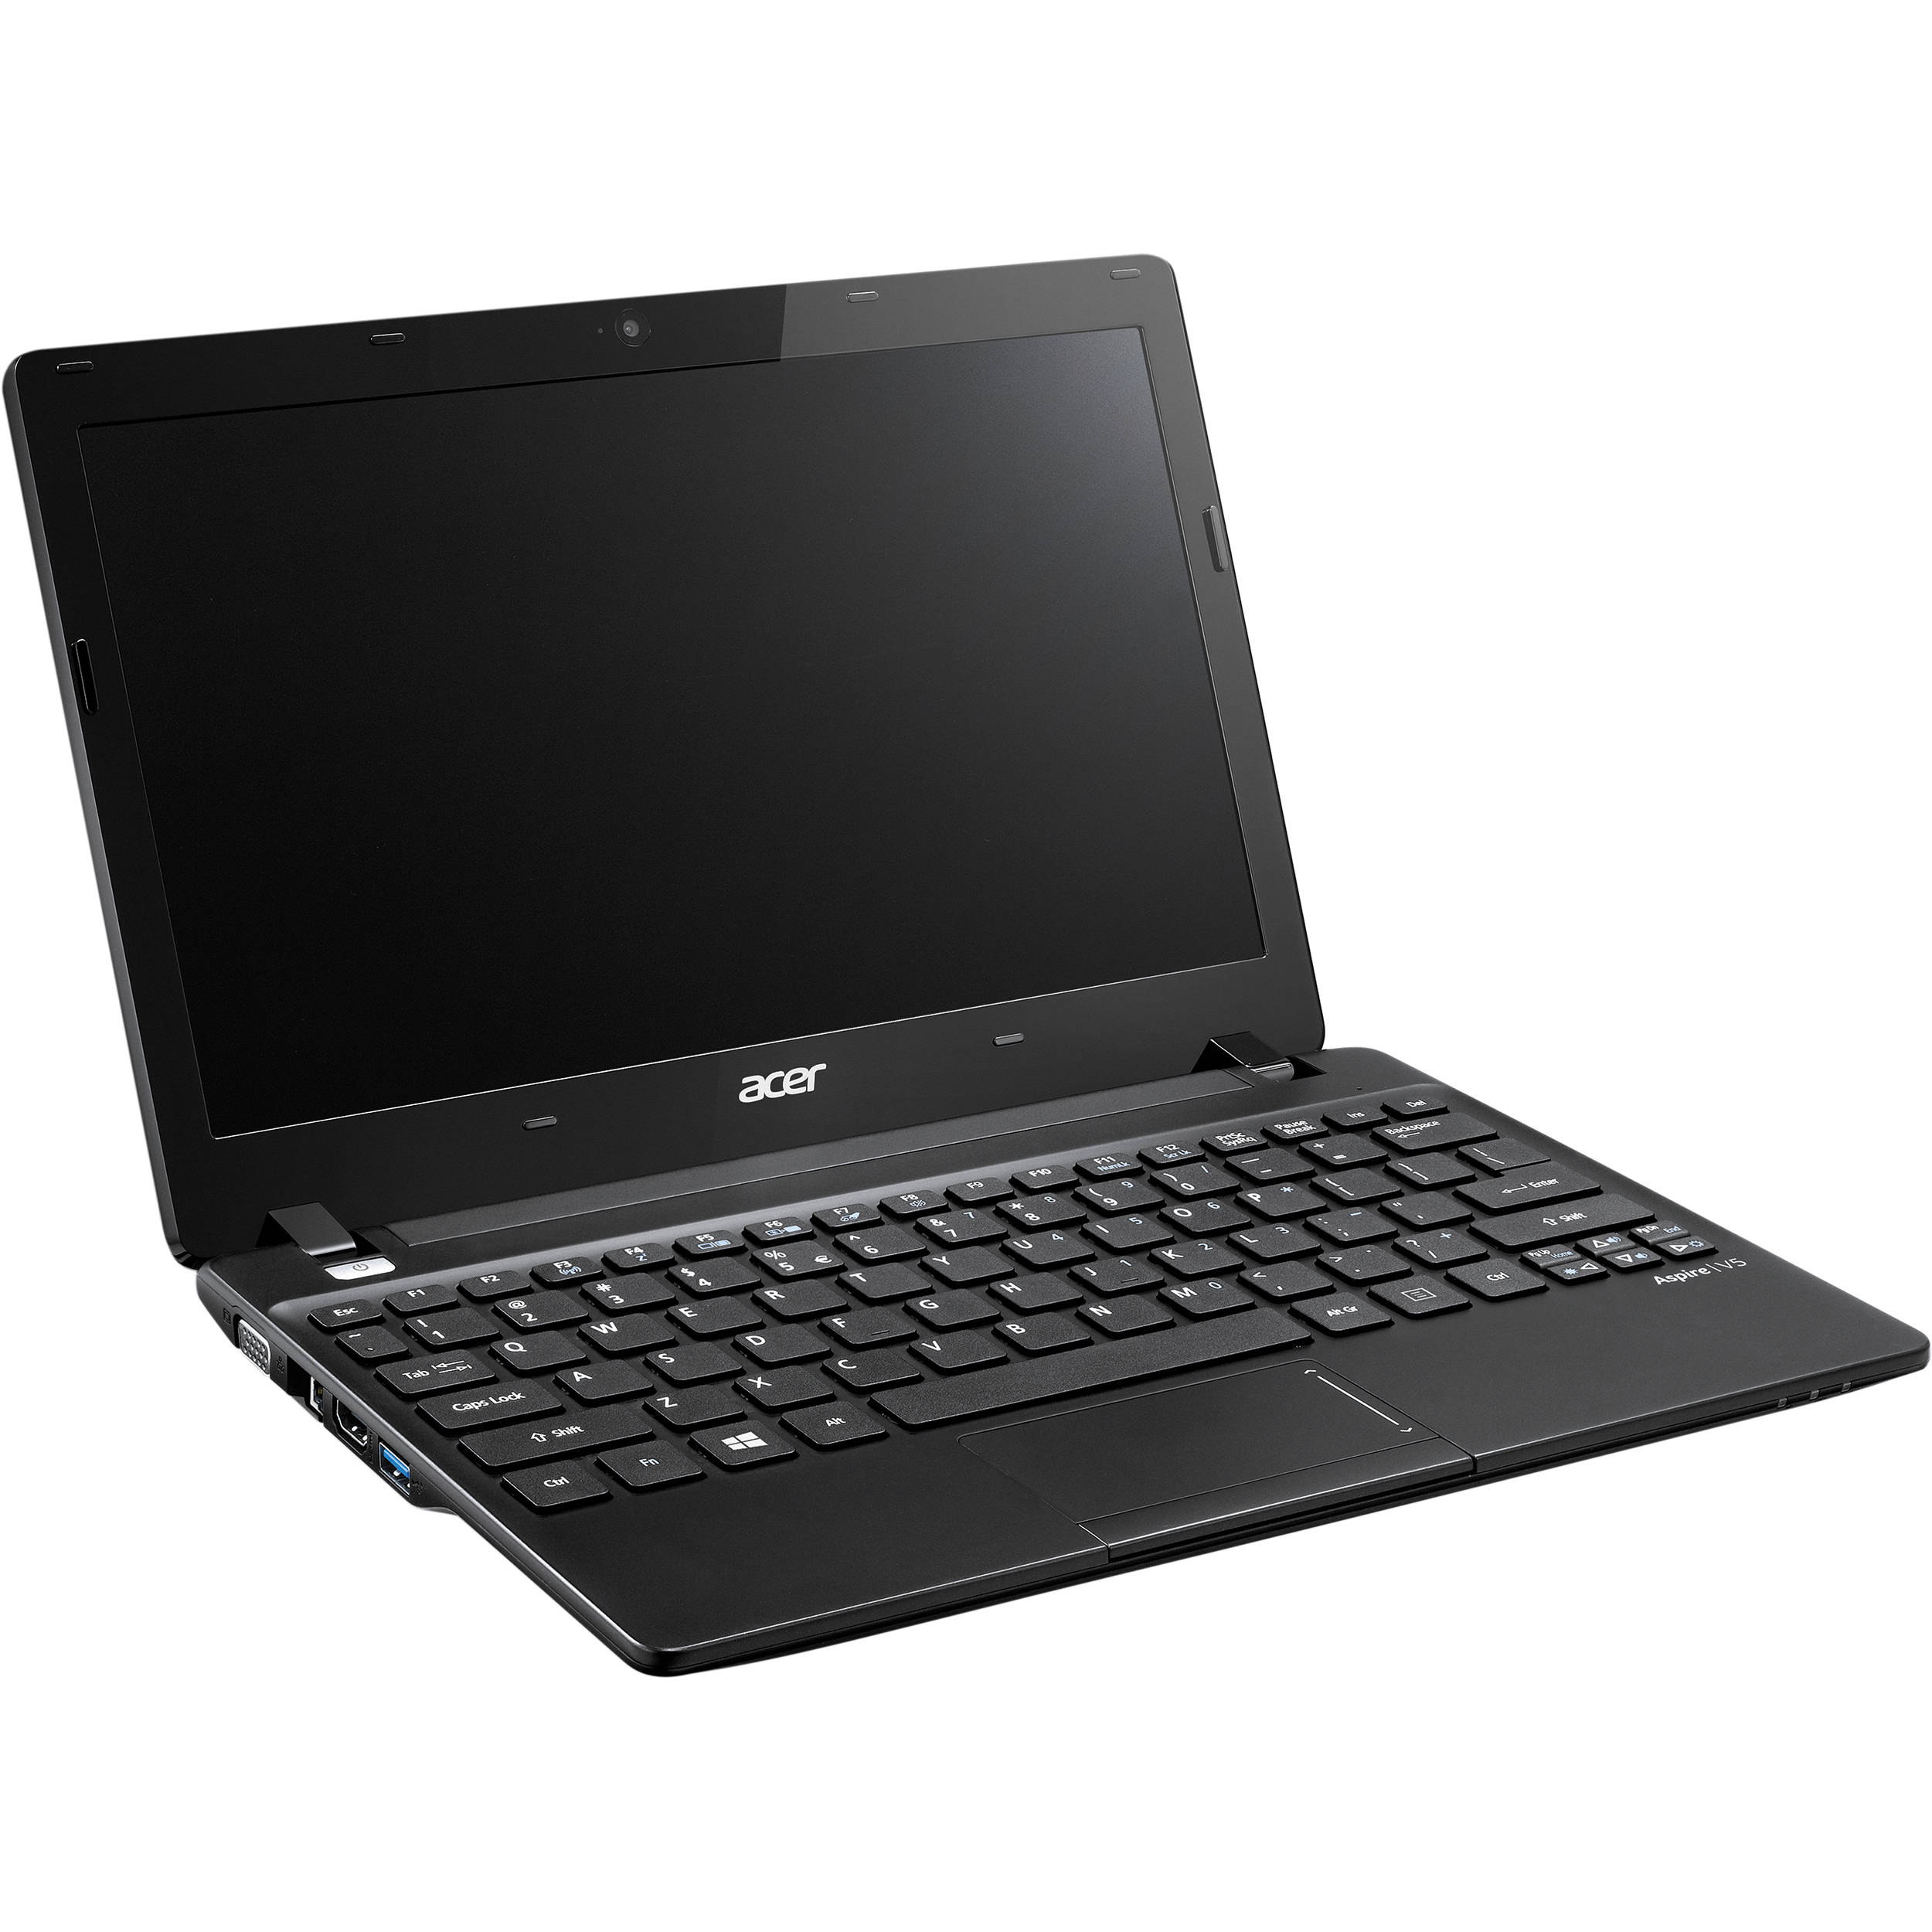 Acer Aspire V5-123 Windows Vista 32-BIT